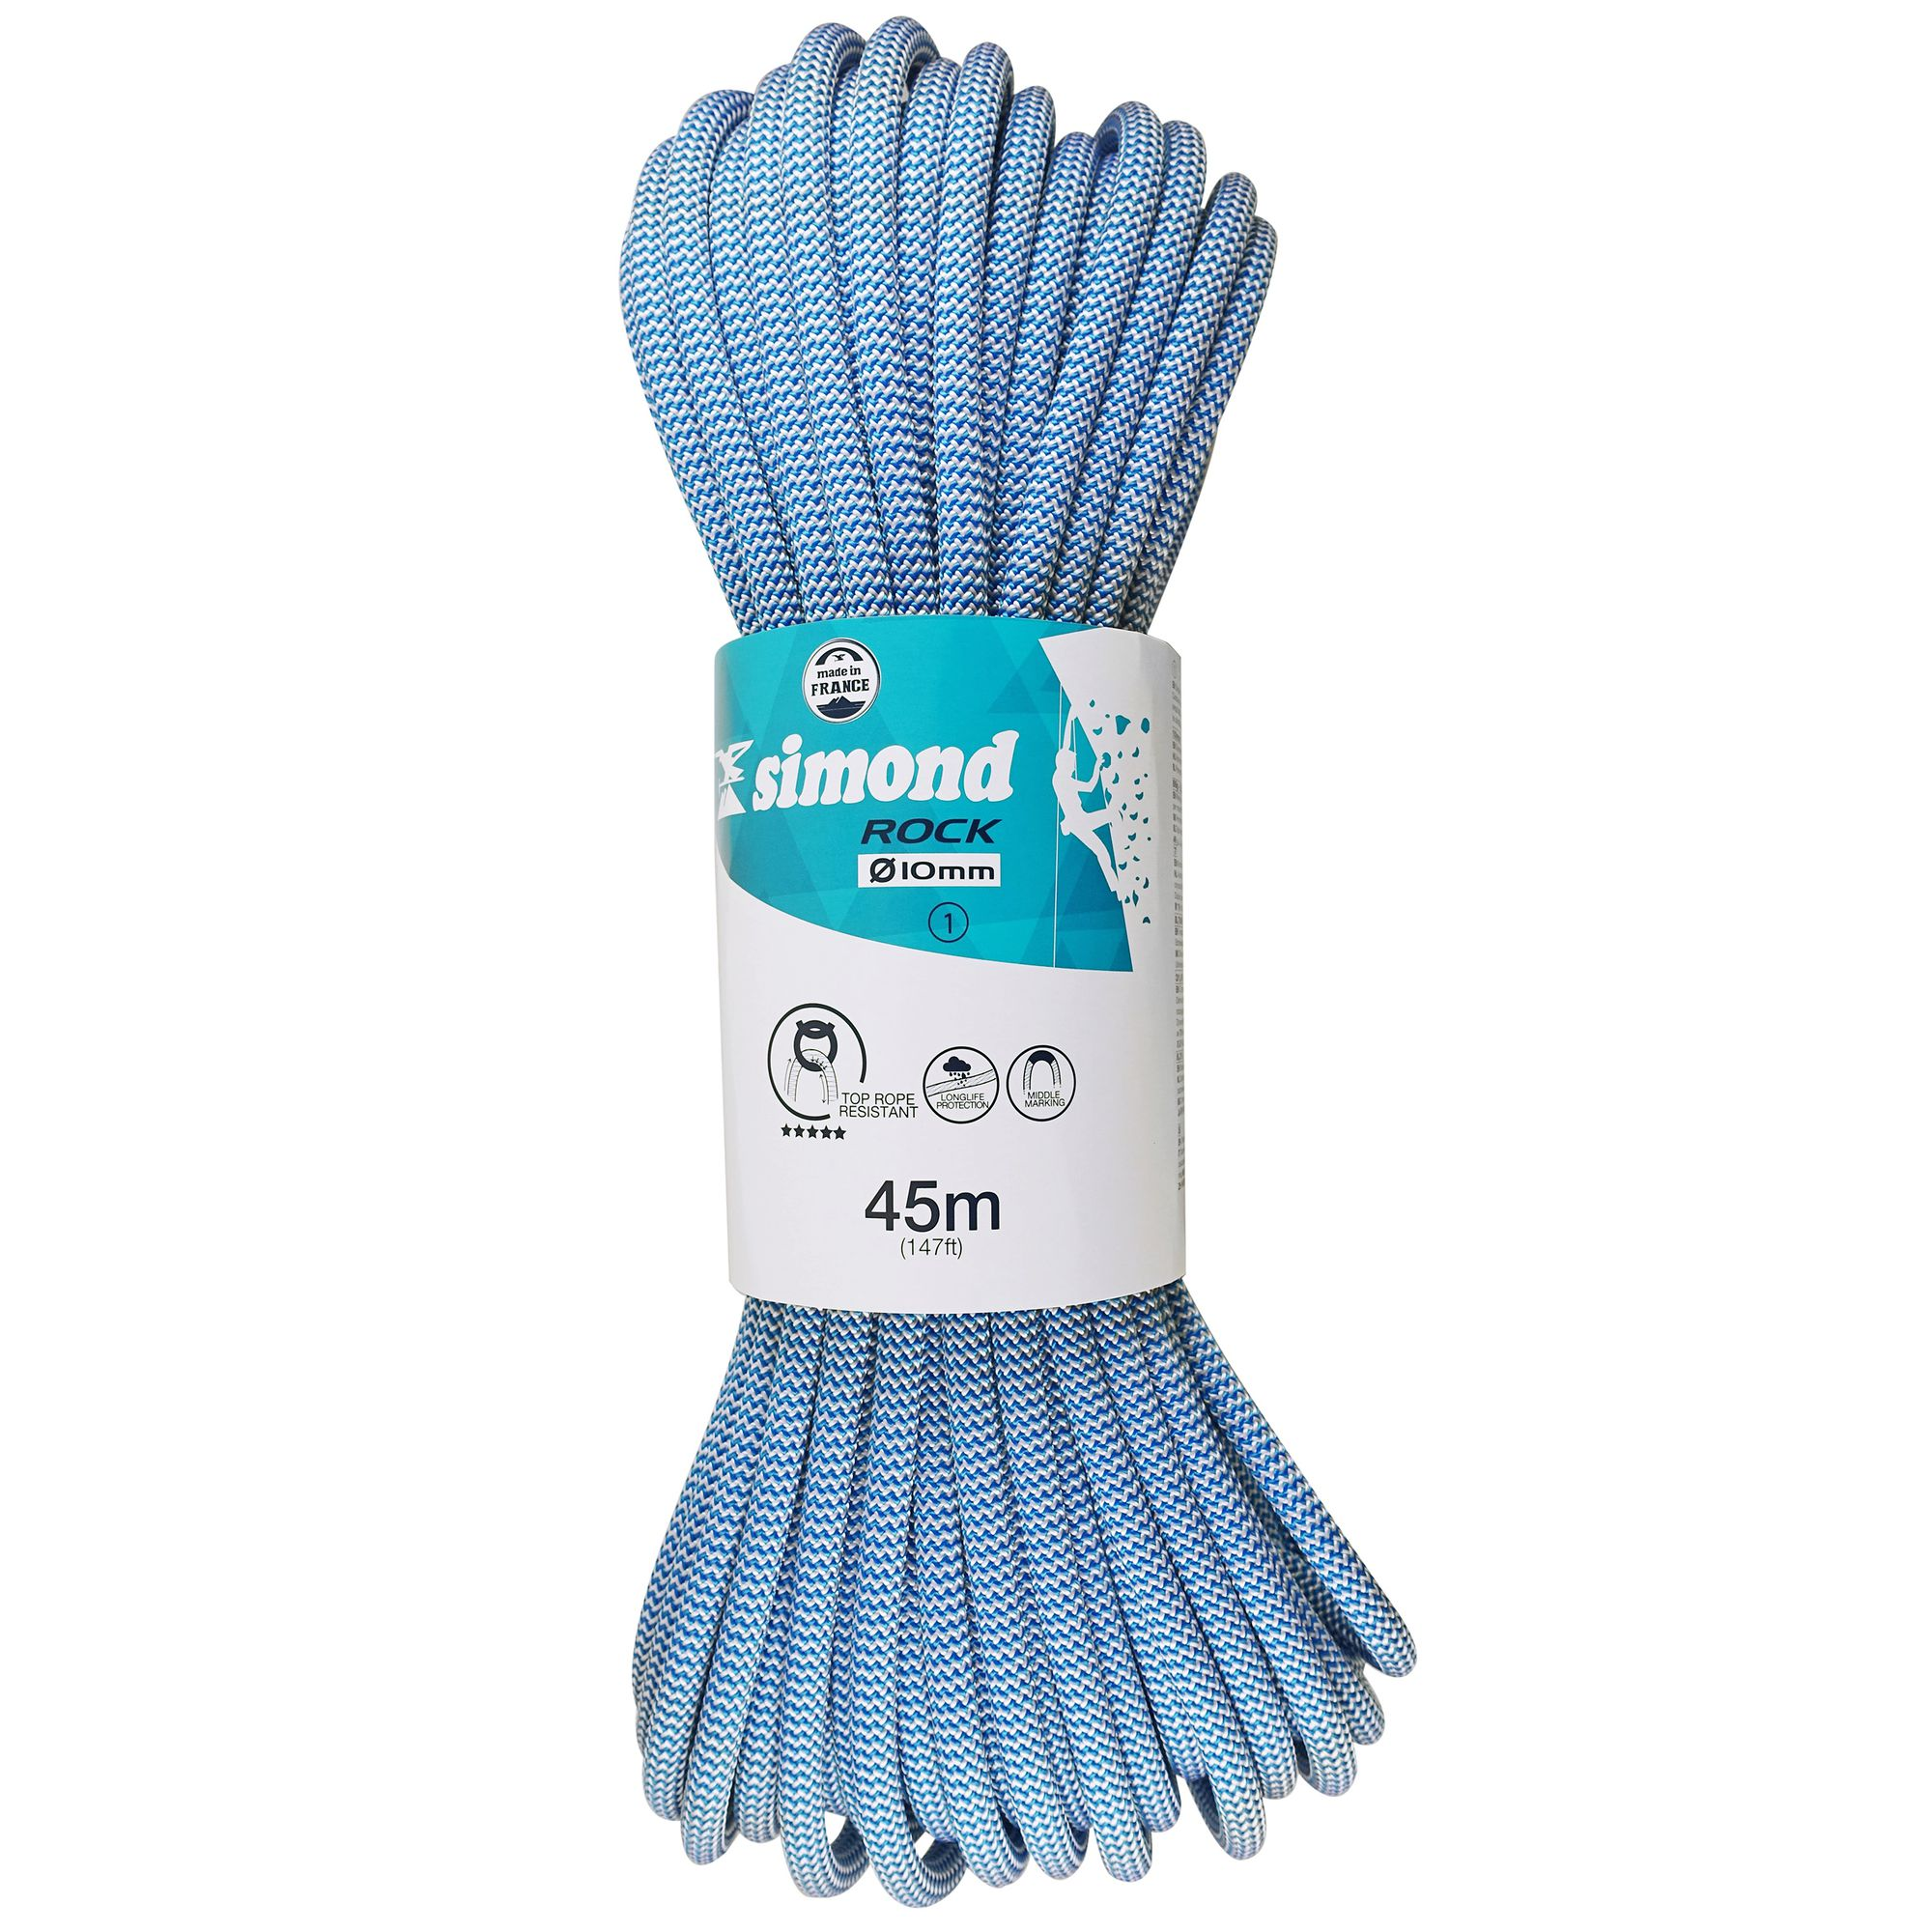 CORDE D'ESCALADE INDOOR ROCK 10MM X 45M BLEU SIMOND